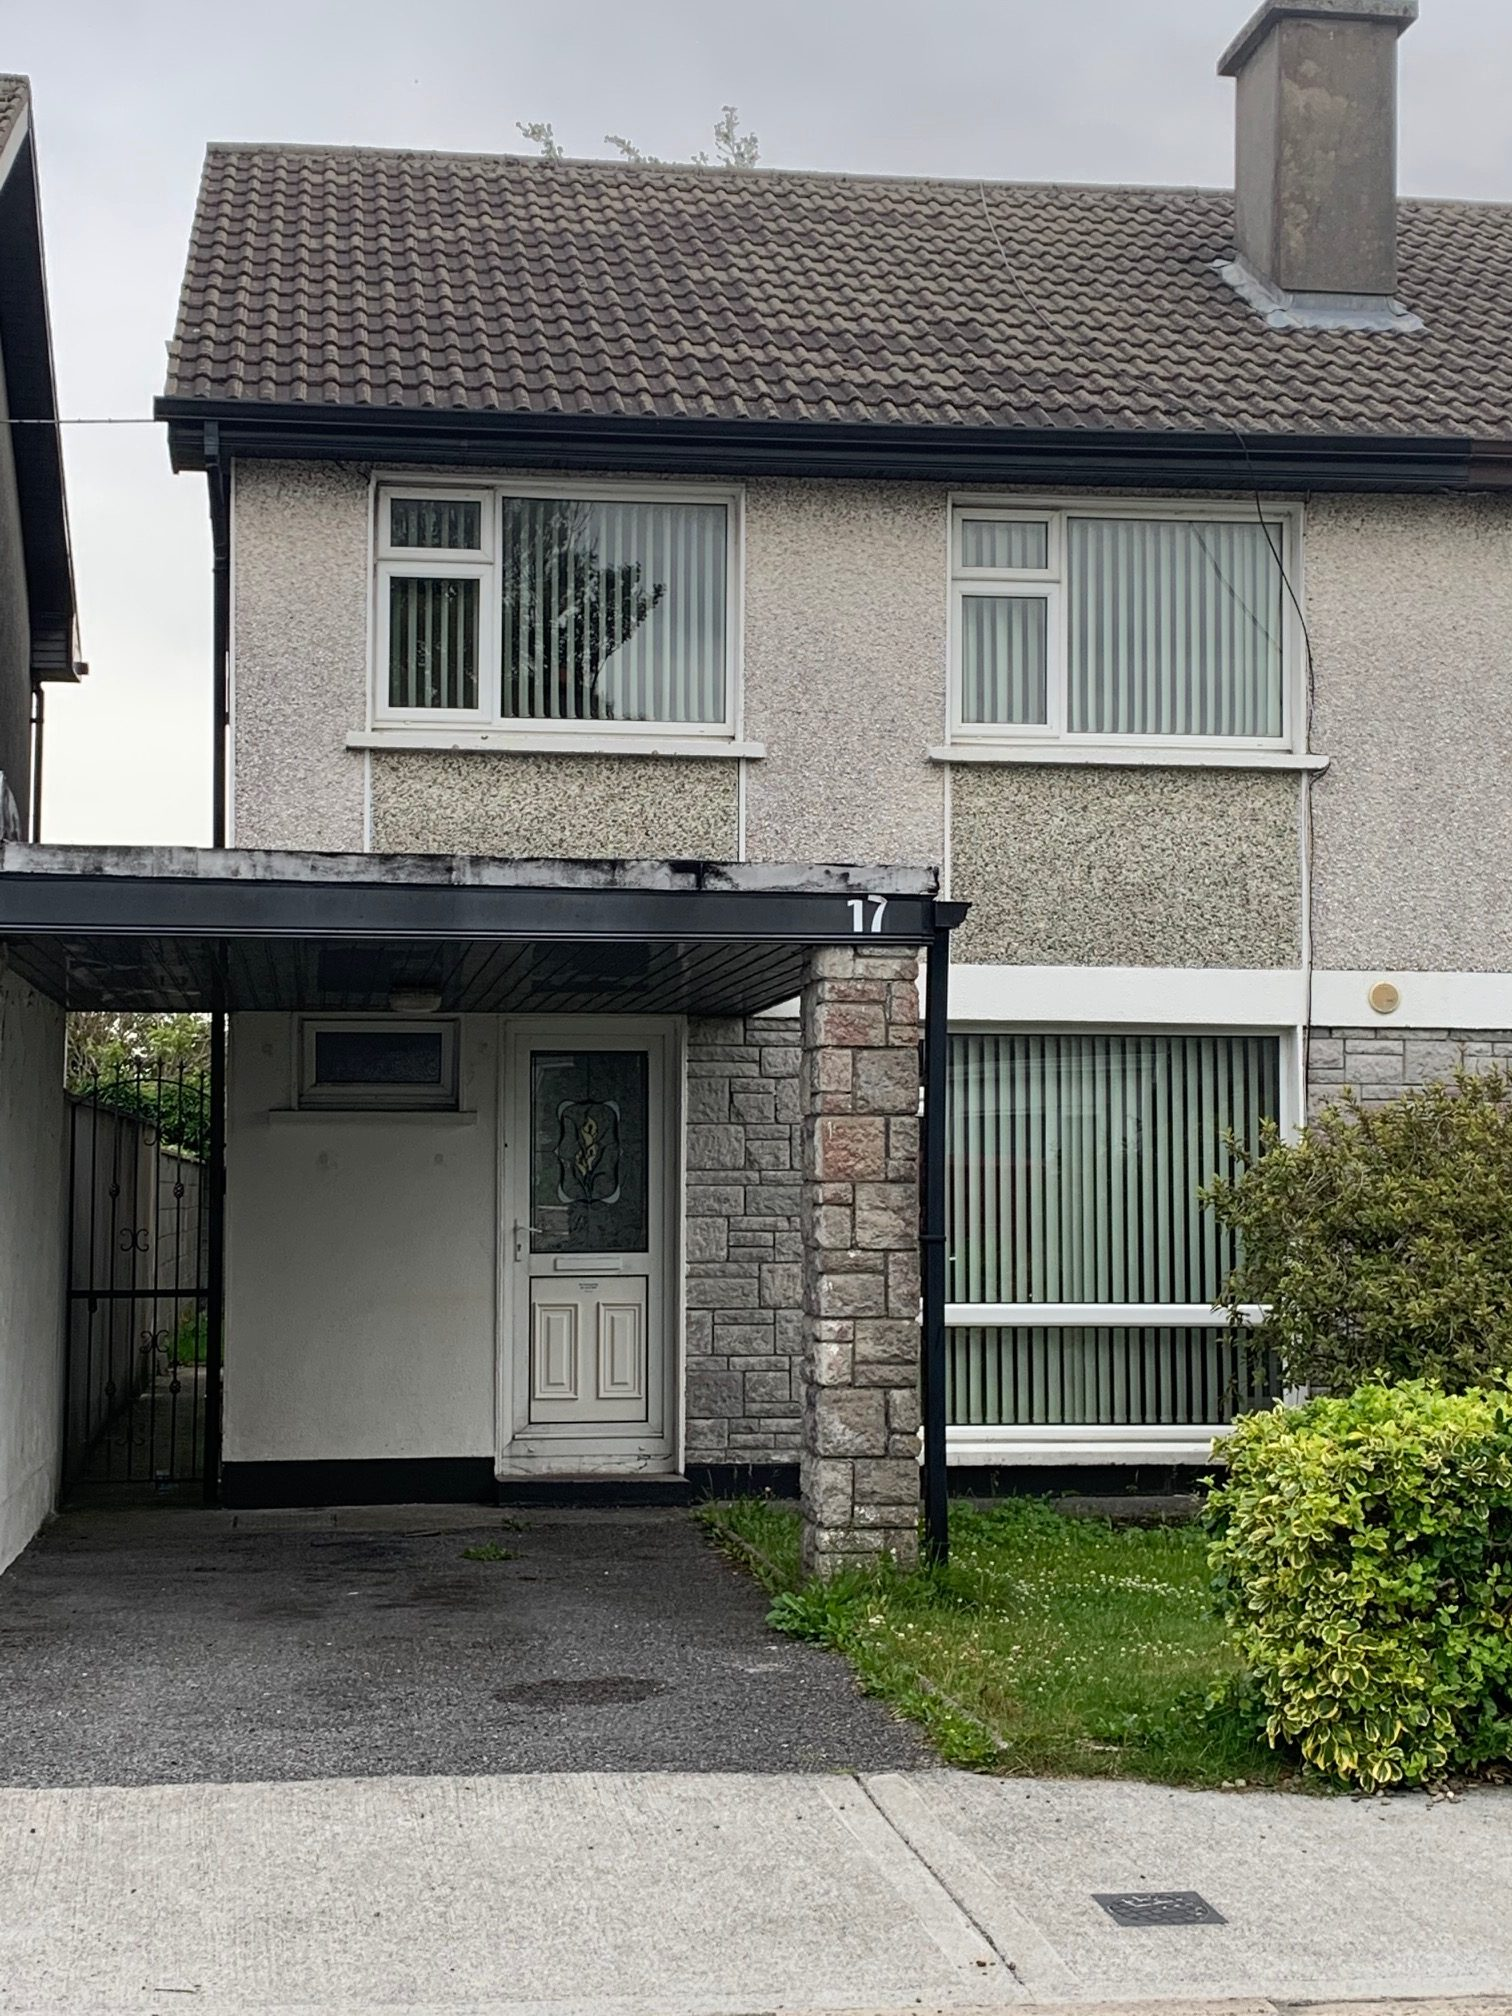 17 Clifton Crescent, Newcastle, Newcastle, Co. Galway H91 DWT4